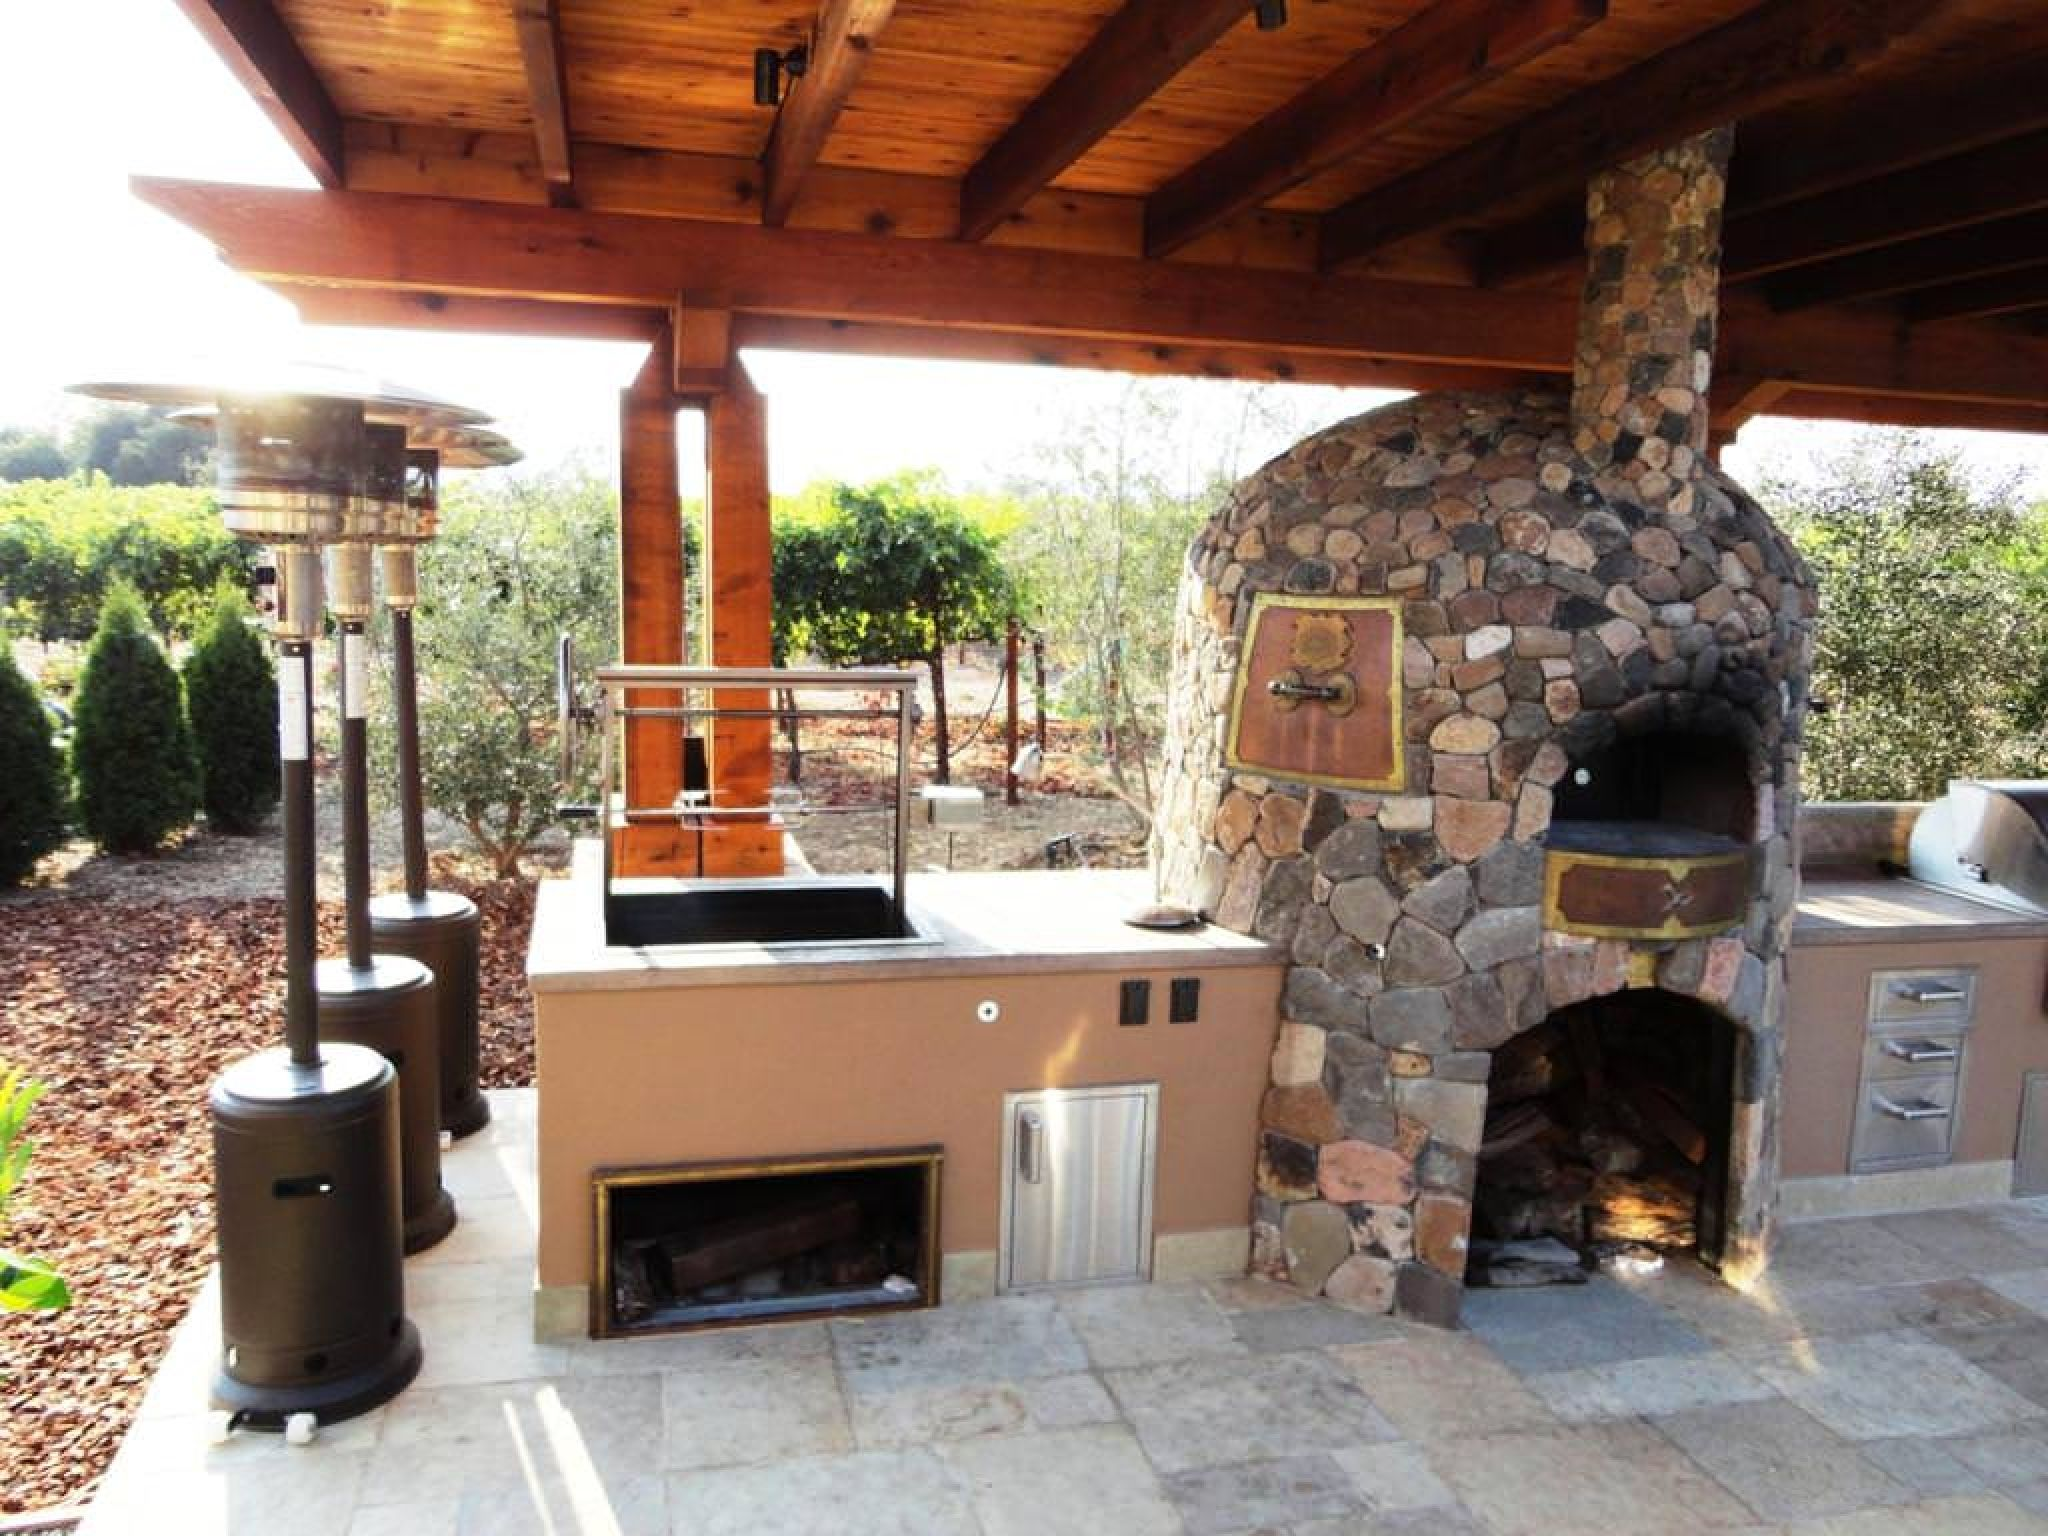 Outdoor Kitchen With Pizza Oven Plans Interior Paint Color Schemes Check More At Http Www Mtbasics Com Out Backyard Pizza Oven Outdoor Kitchen Kitchen Oven